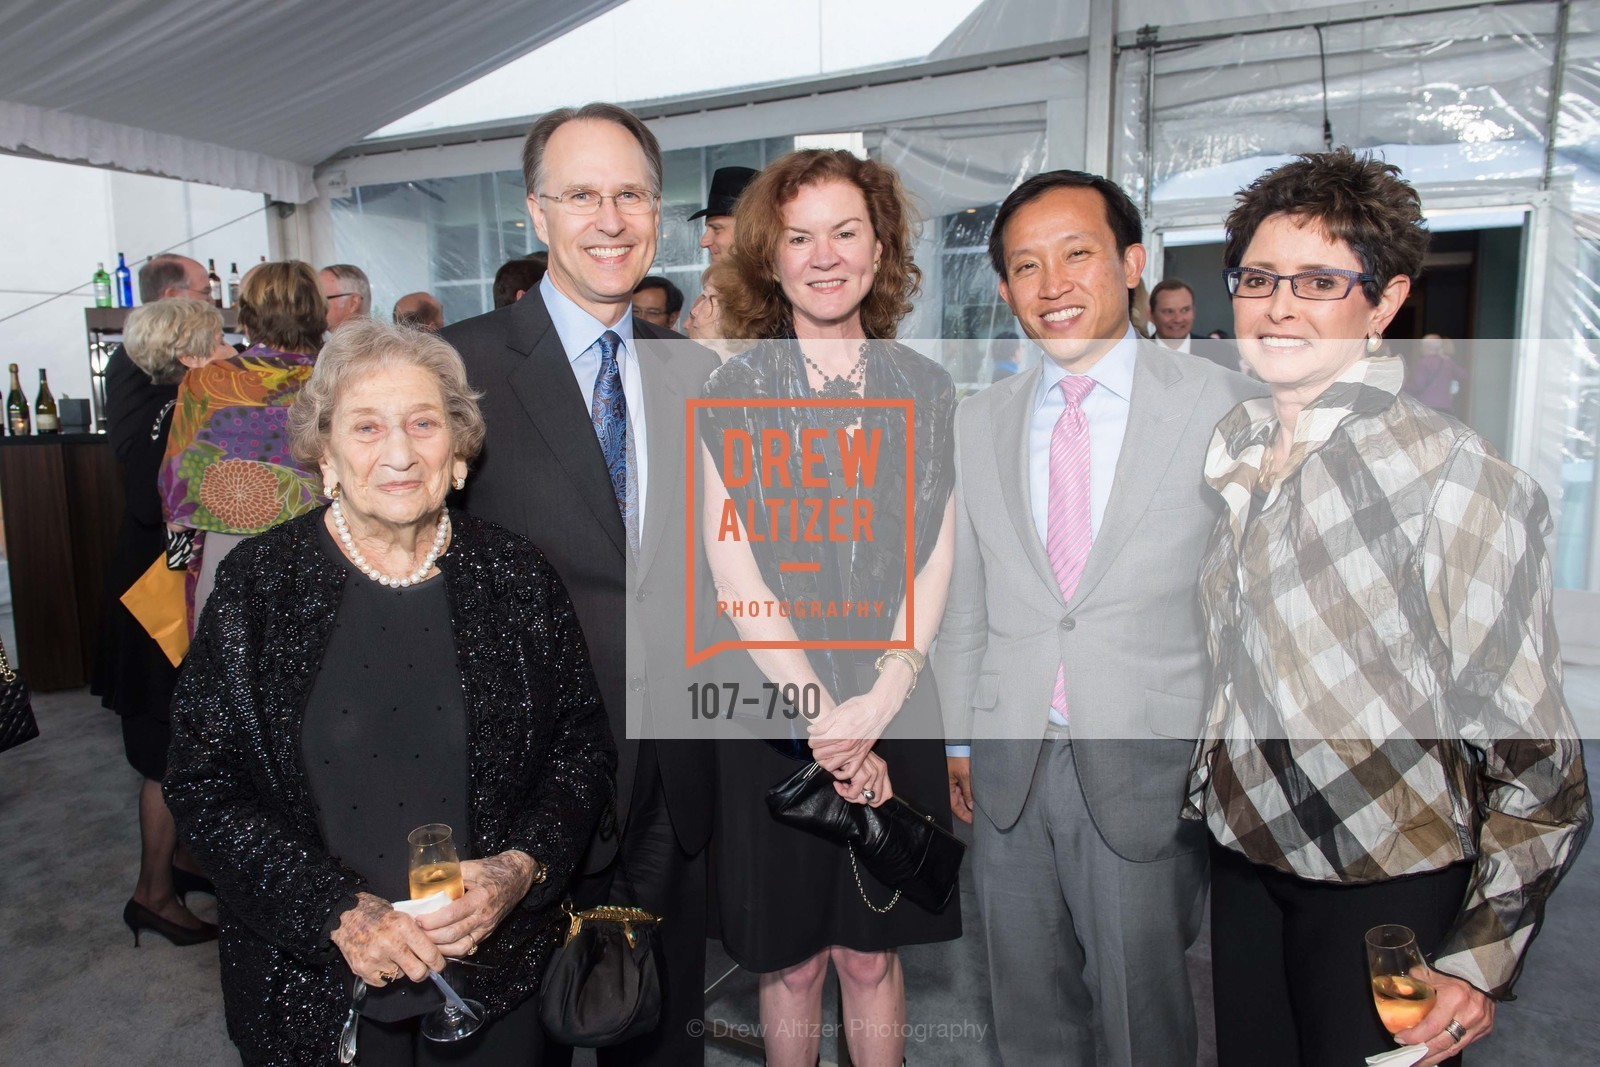 Rita Semel, Jeff Bialik, Katherine Munter, David Chiu, Jerilyn Gelt, Post War and Contemporary Preview at HEDGE GALLERY, US, April 16th, 2015,Drew Altizer, Drew Altizer Photography, full-service agency, private events, San Francisco photographer, photographer california